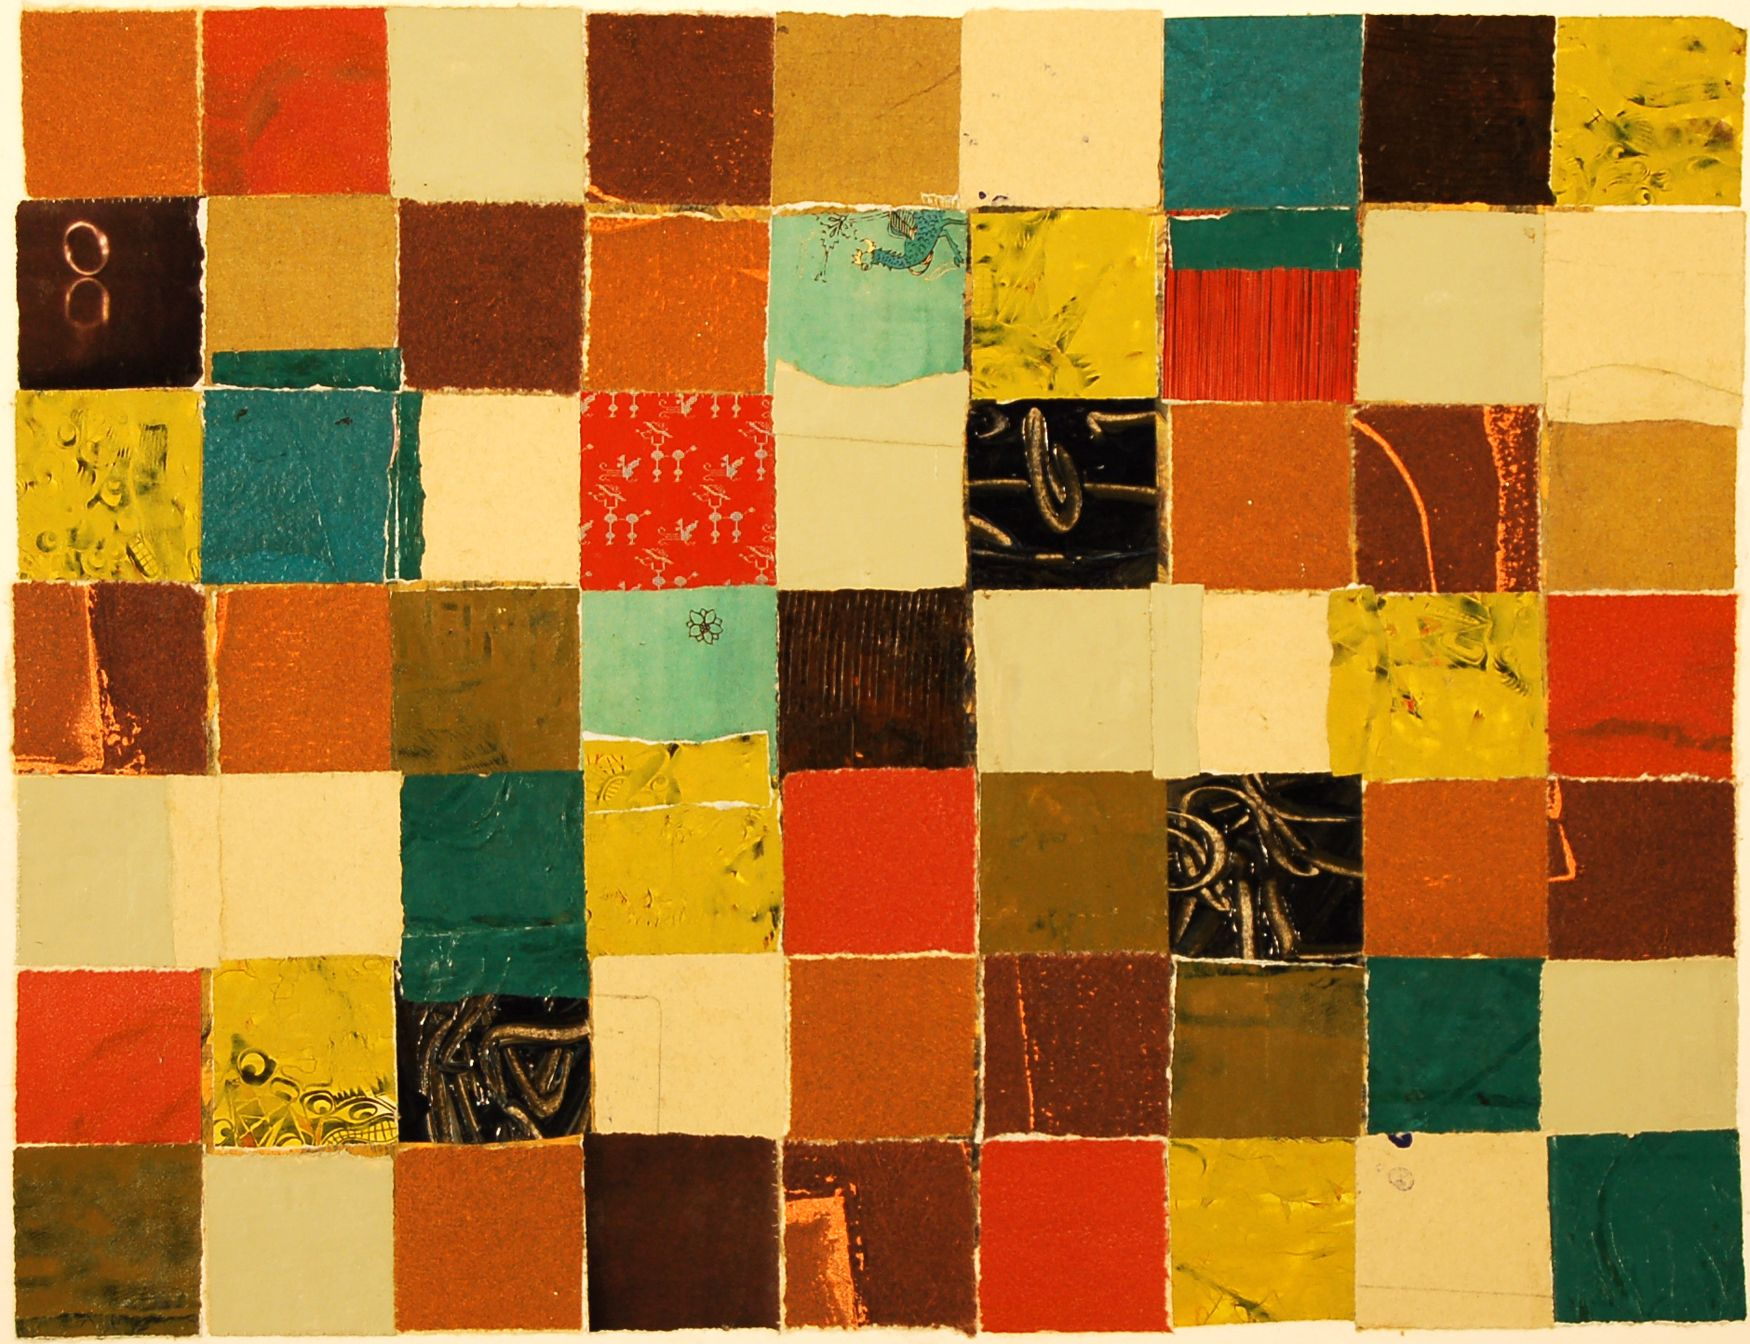 nancy egol nikkal, Color Memory 7 (2010) collage with various papers ...